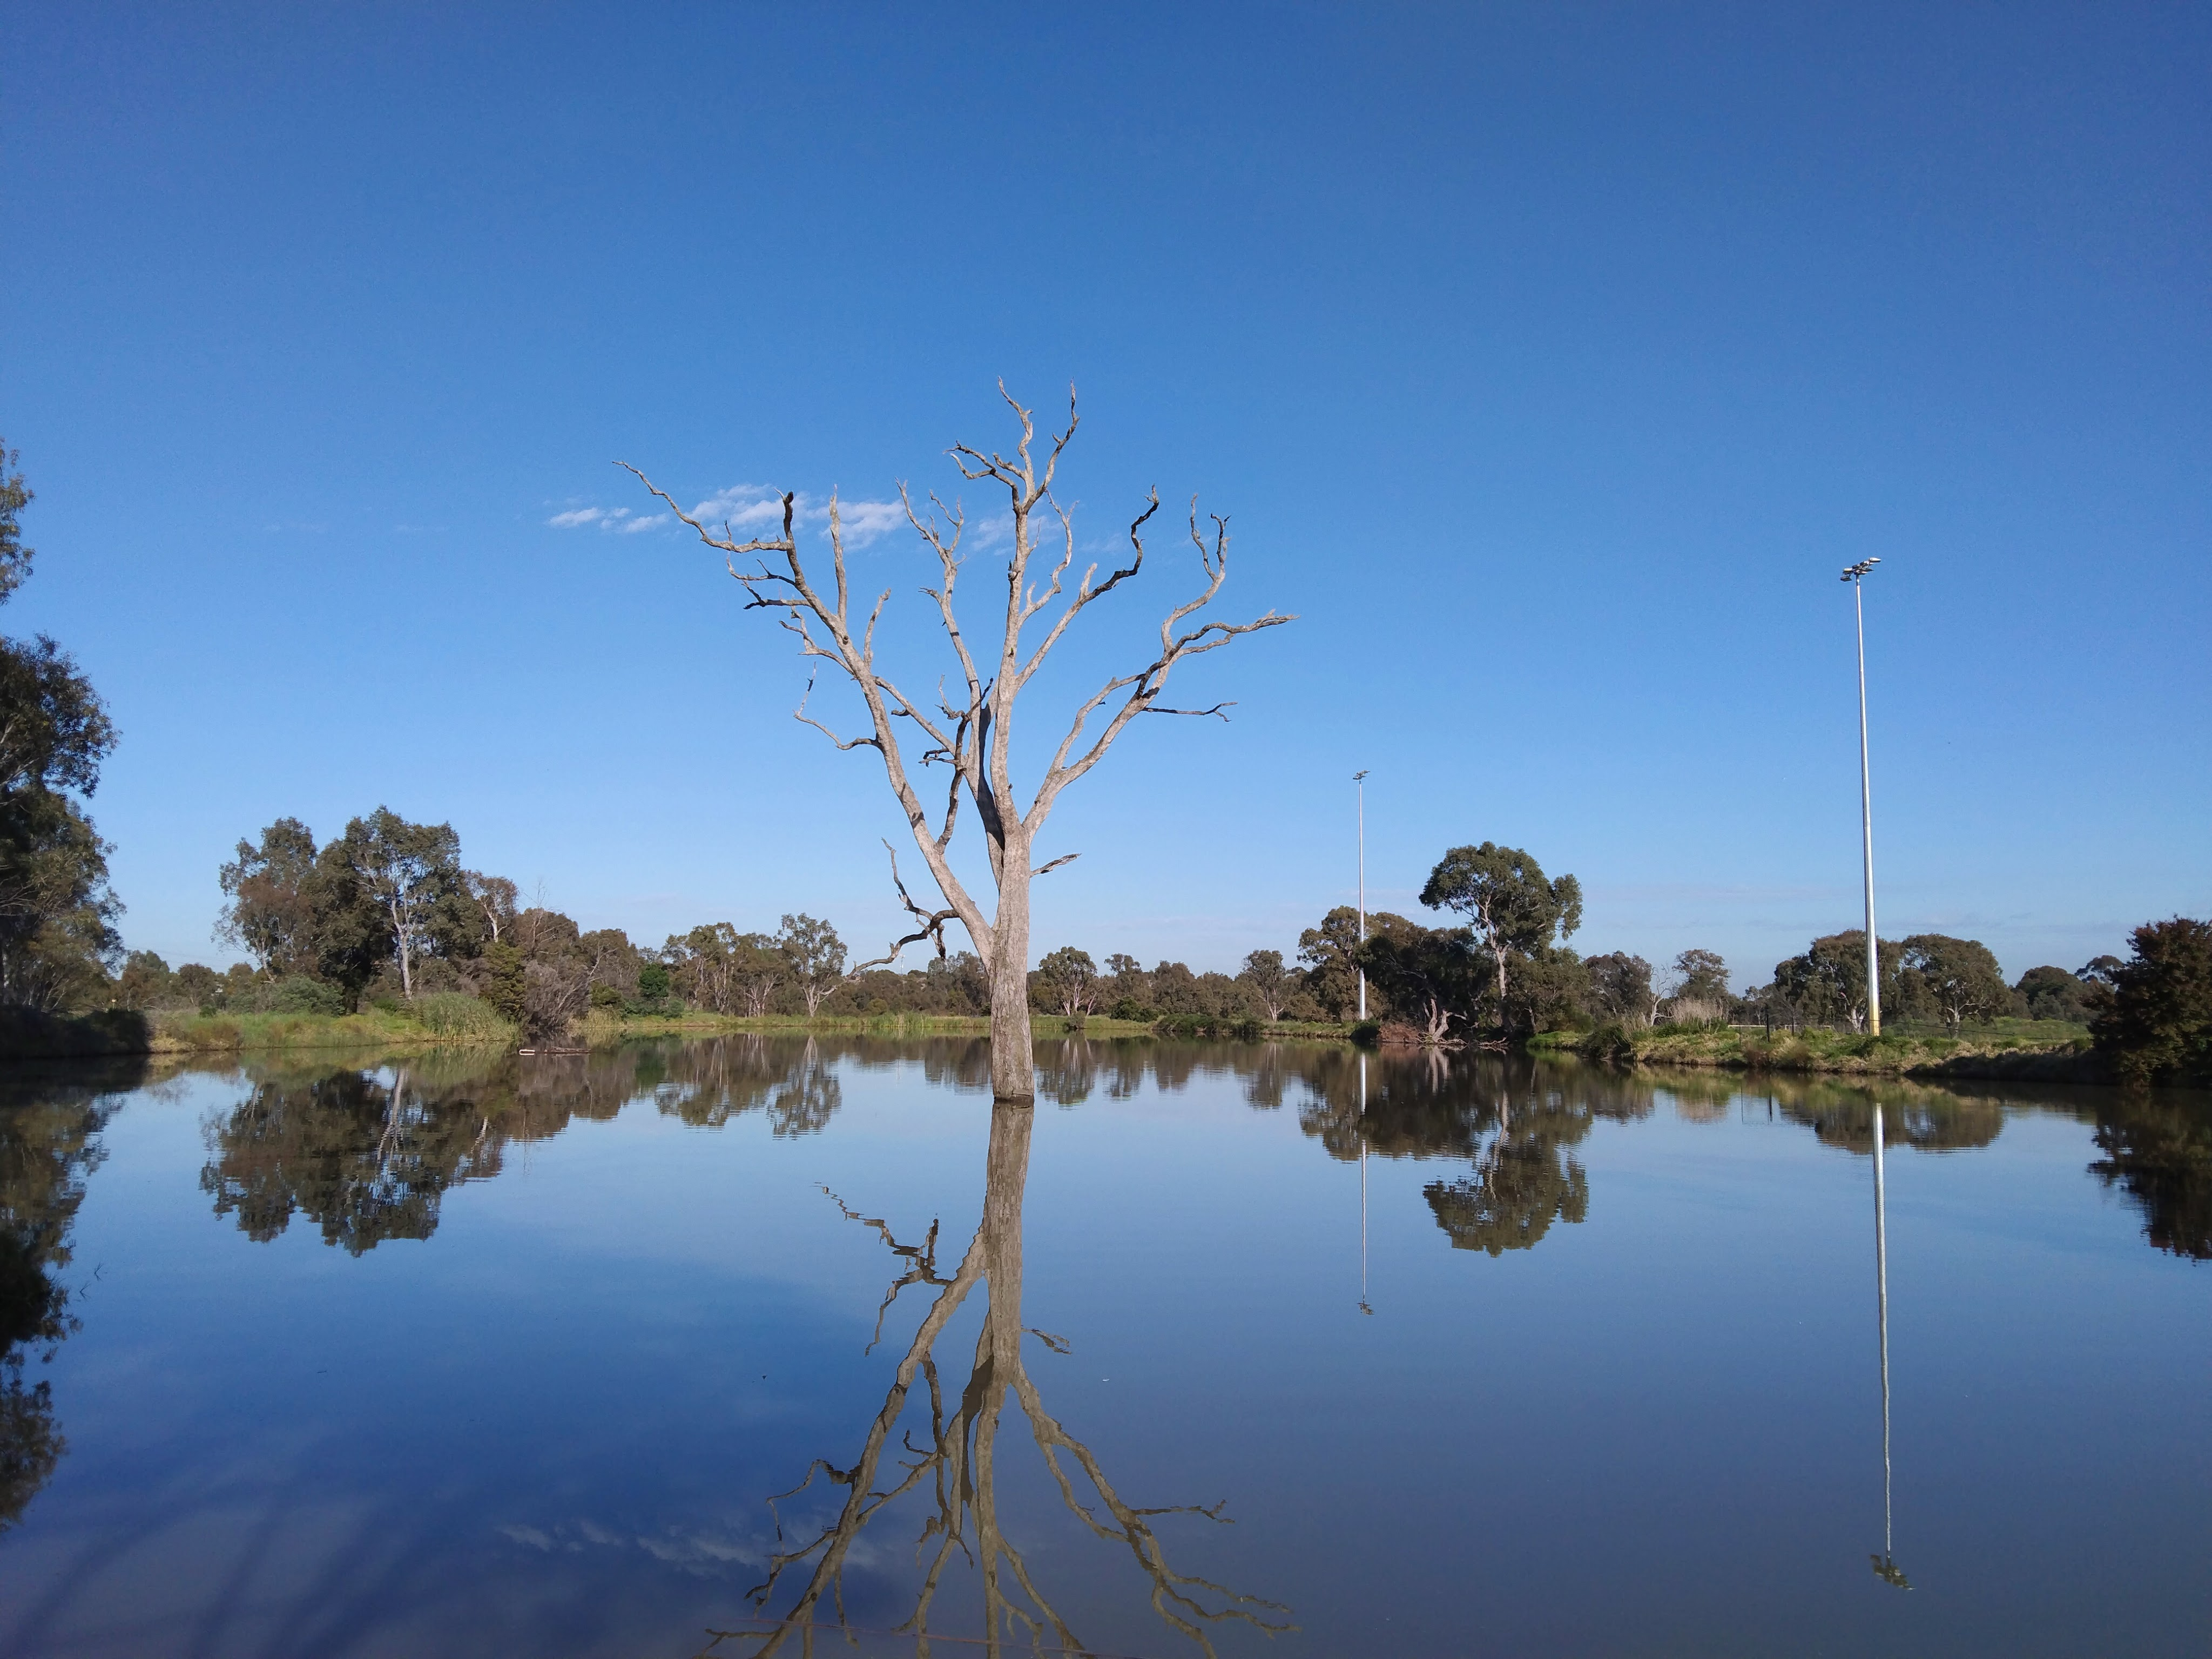 Lake with dead tree and reflection